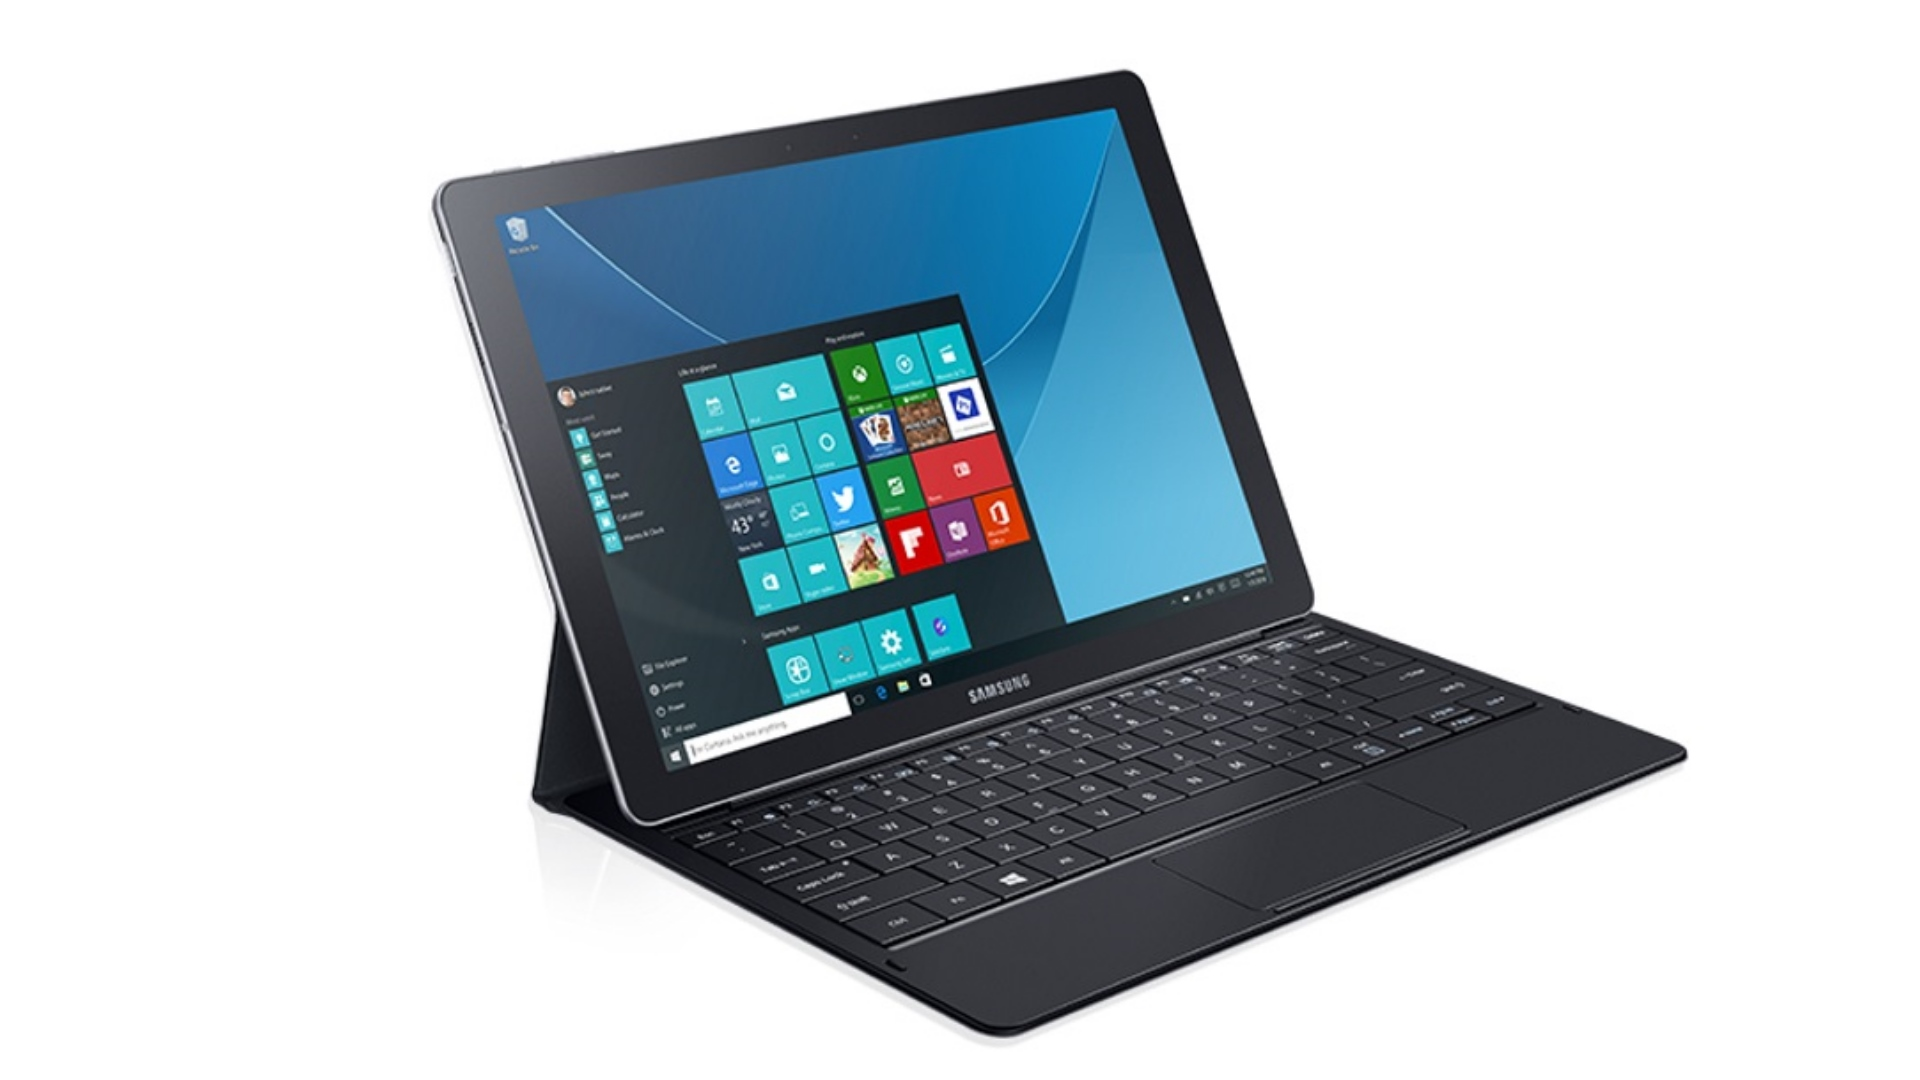 The best Windows tablets: Top a38TSWapXNmDLyWhv3Kv